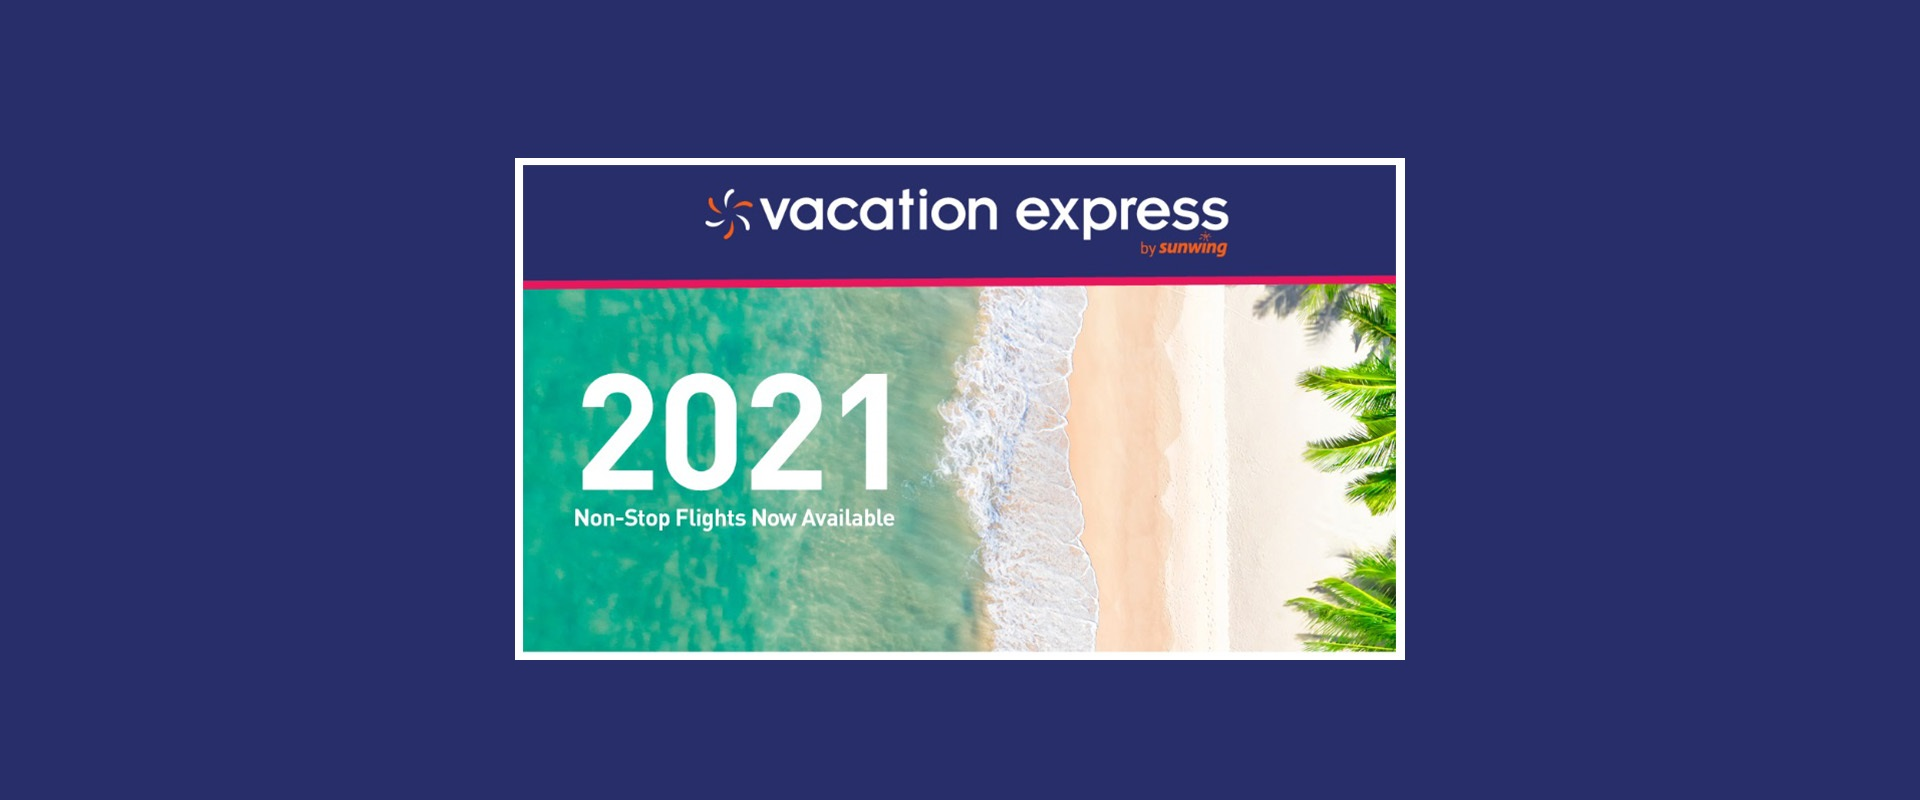 Vacation-Express-Schedule-Banner